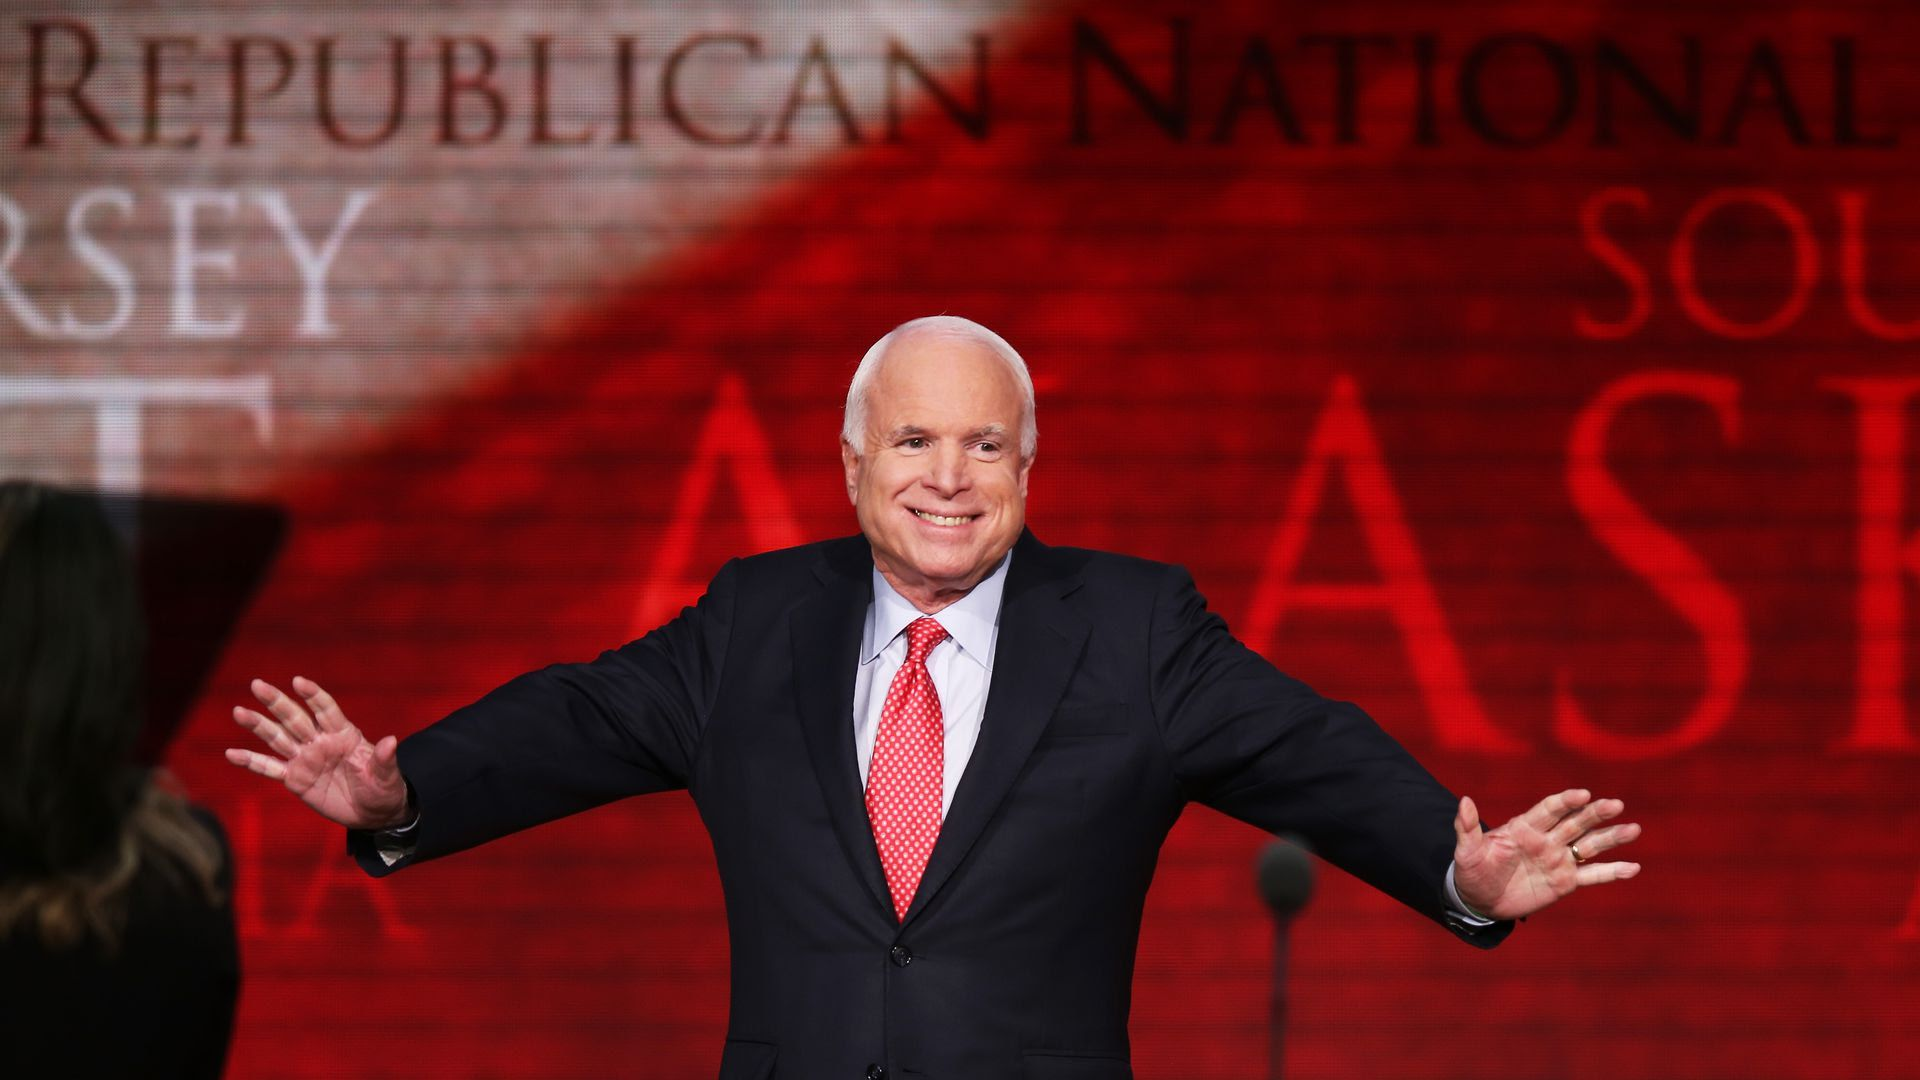 Sen. John McCain at the 2012 Republican National Convention.